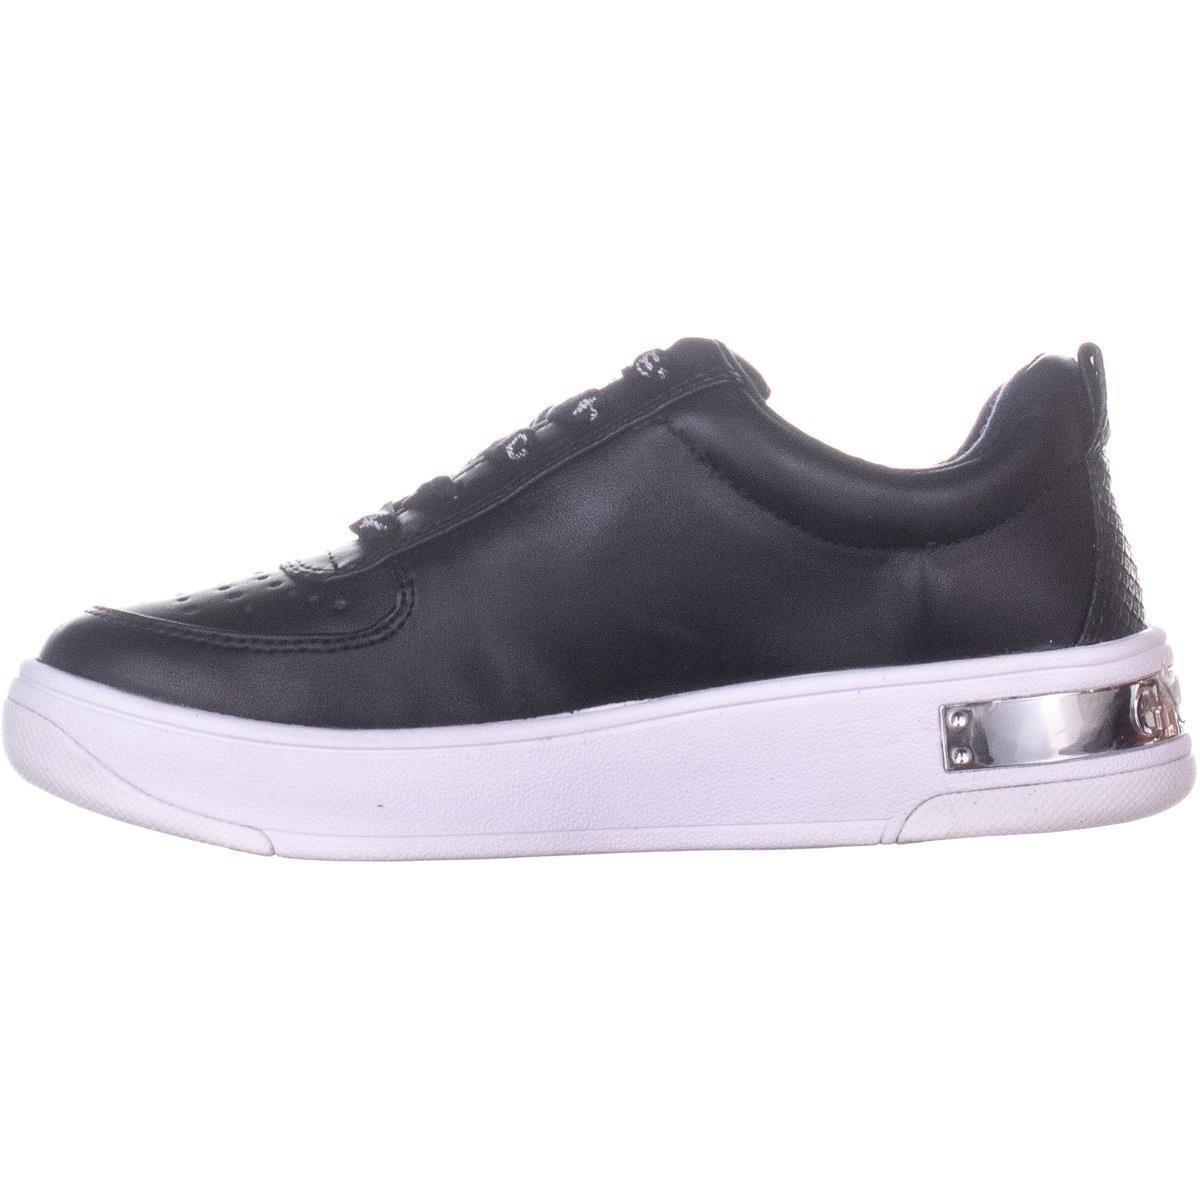 94e466cac56c Guess - Black Hype Platform Lace Up Fashion Sneakers - Lyst. View fullscreen